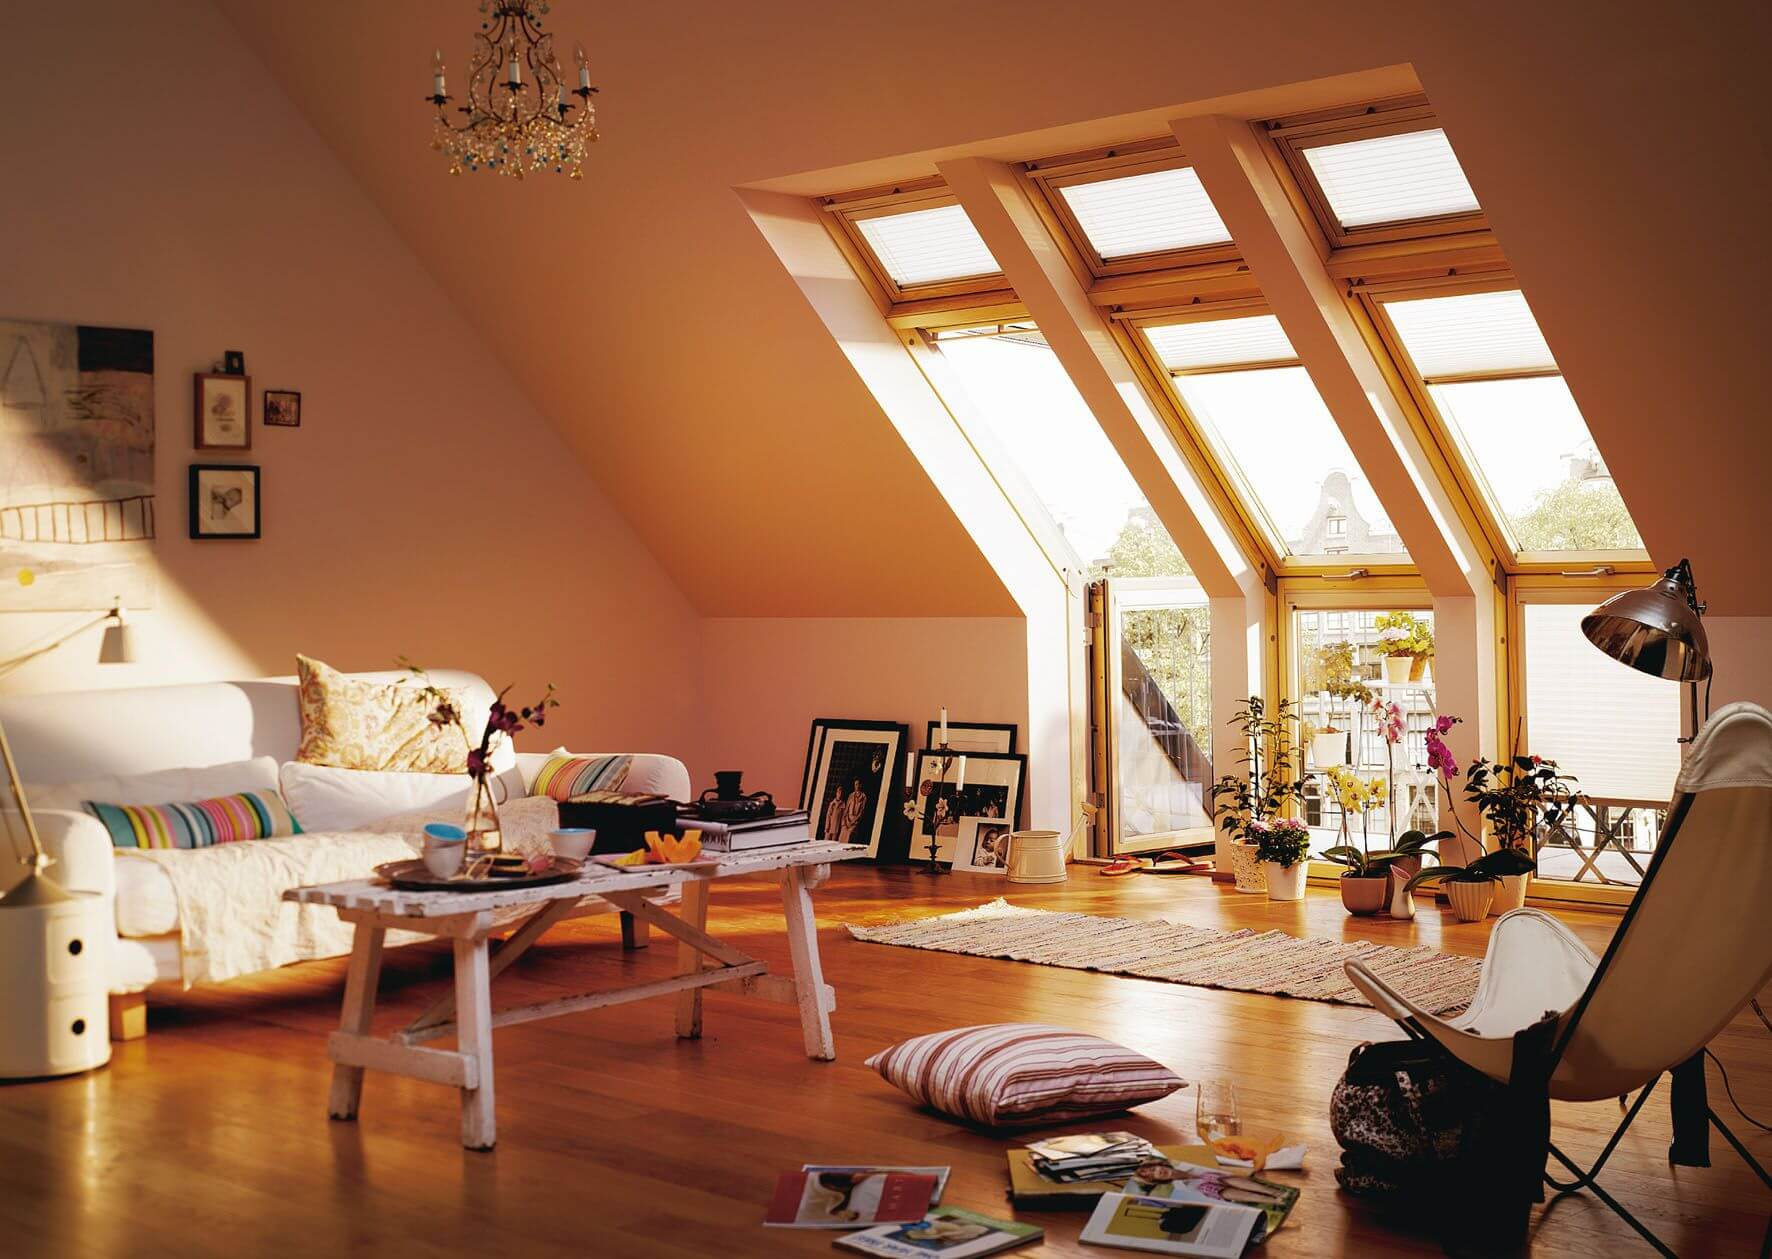 Attic Room Original Finishing and Decoration Ideas with Photos. Wooden framed side skylights providing plenty of natural light